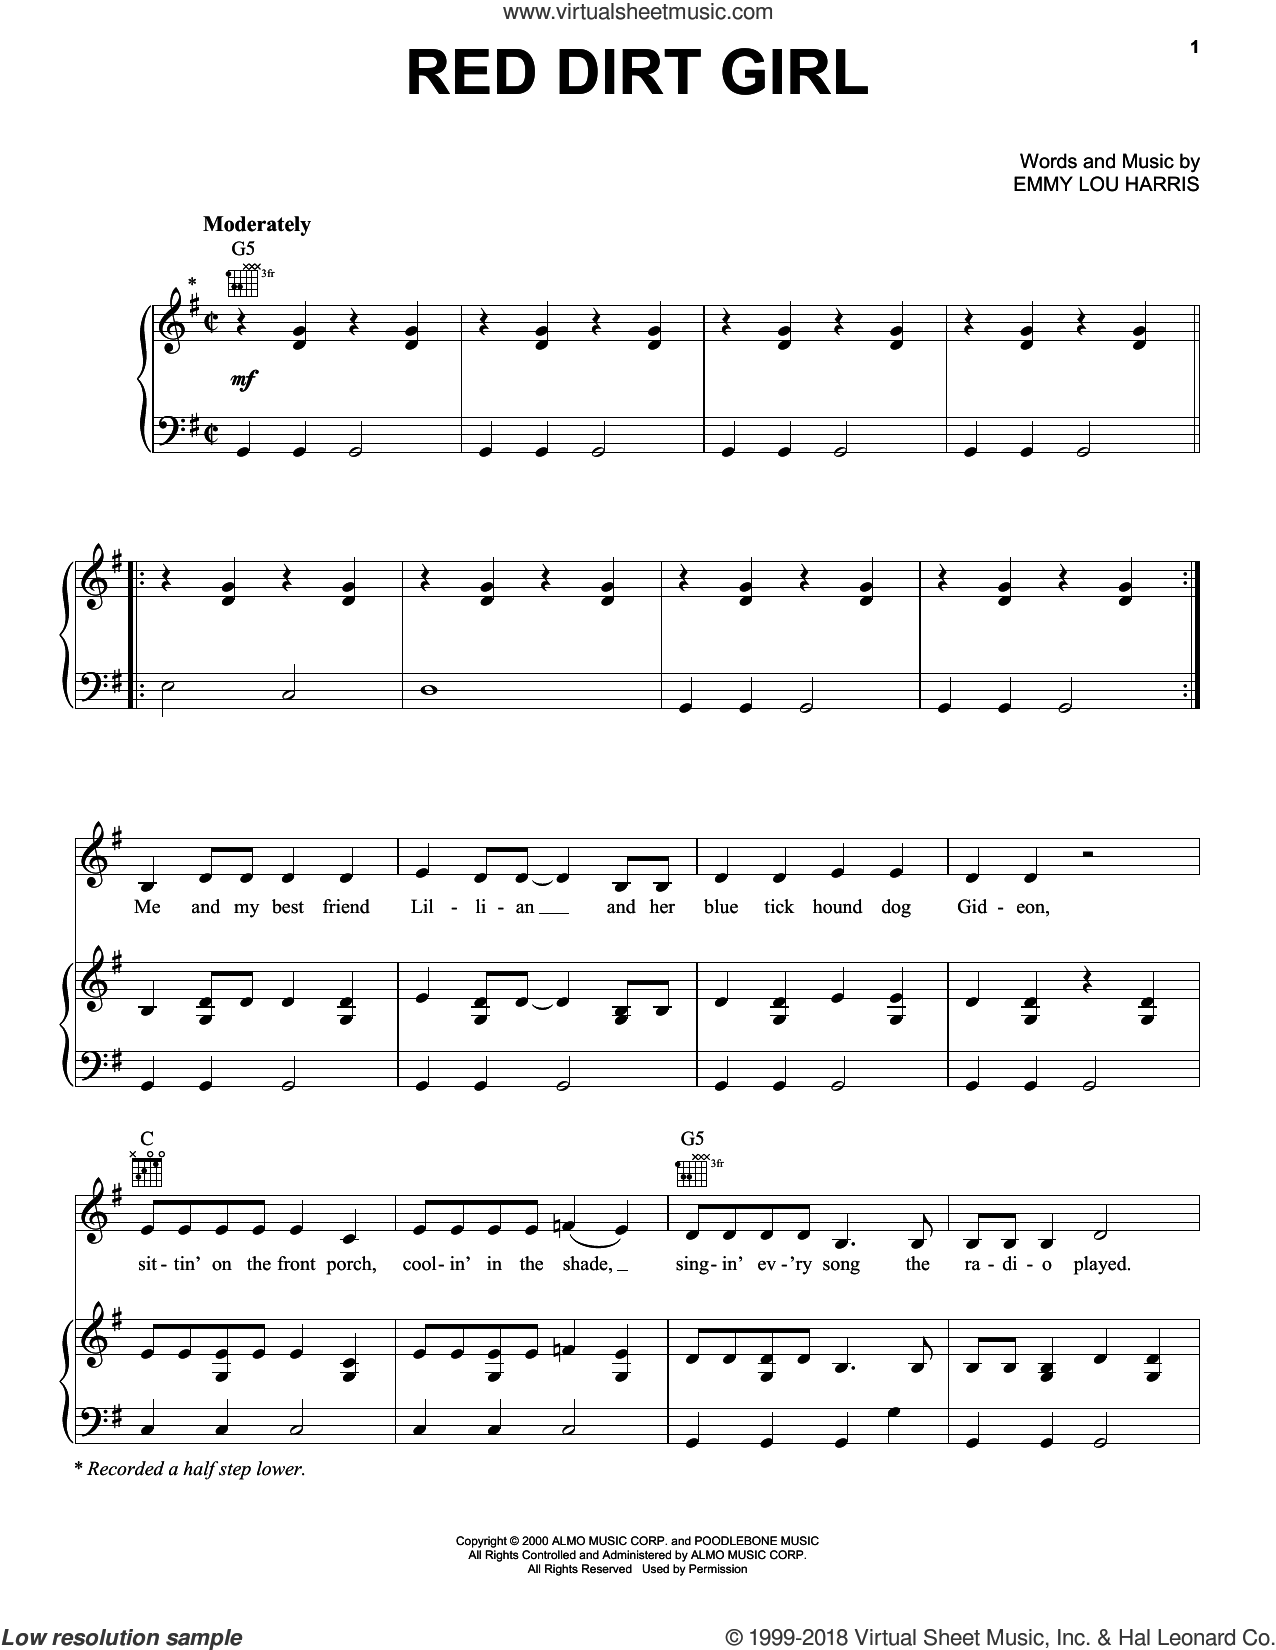 Red Dirt Girl sheet music for voice, piano or guitar by Emmylou Harris